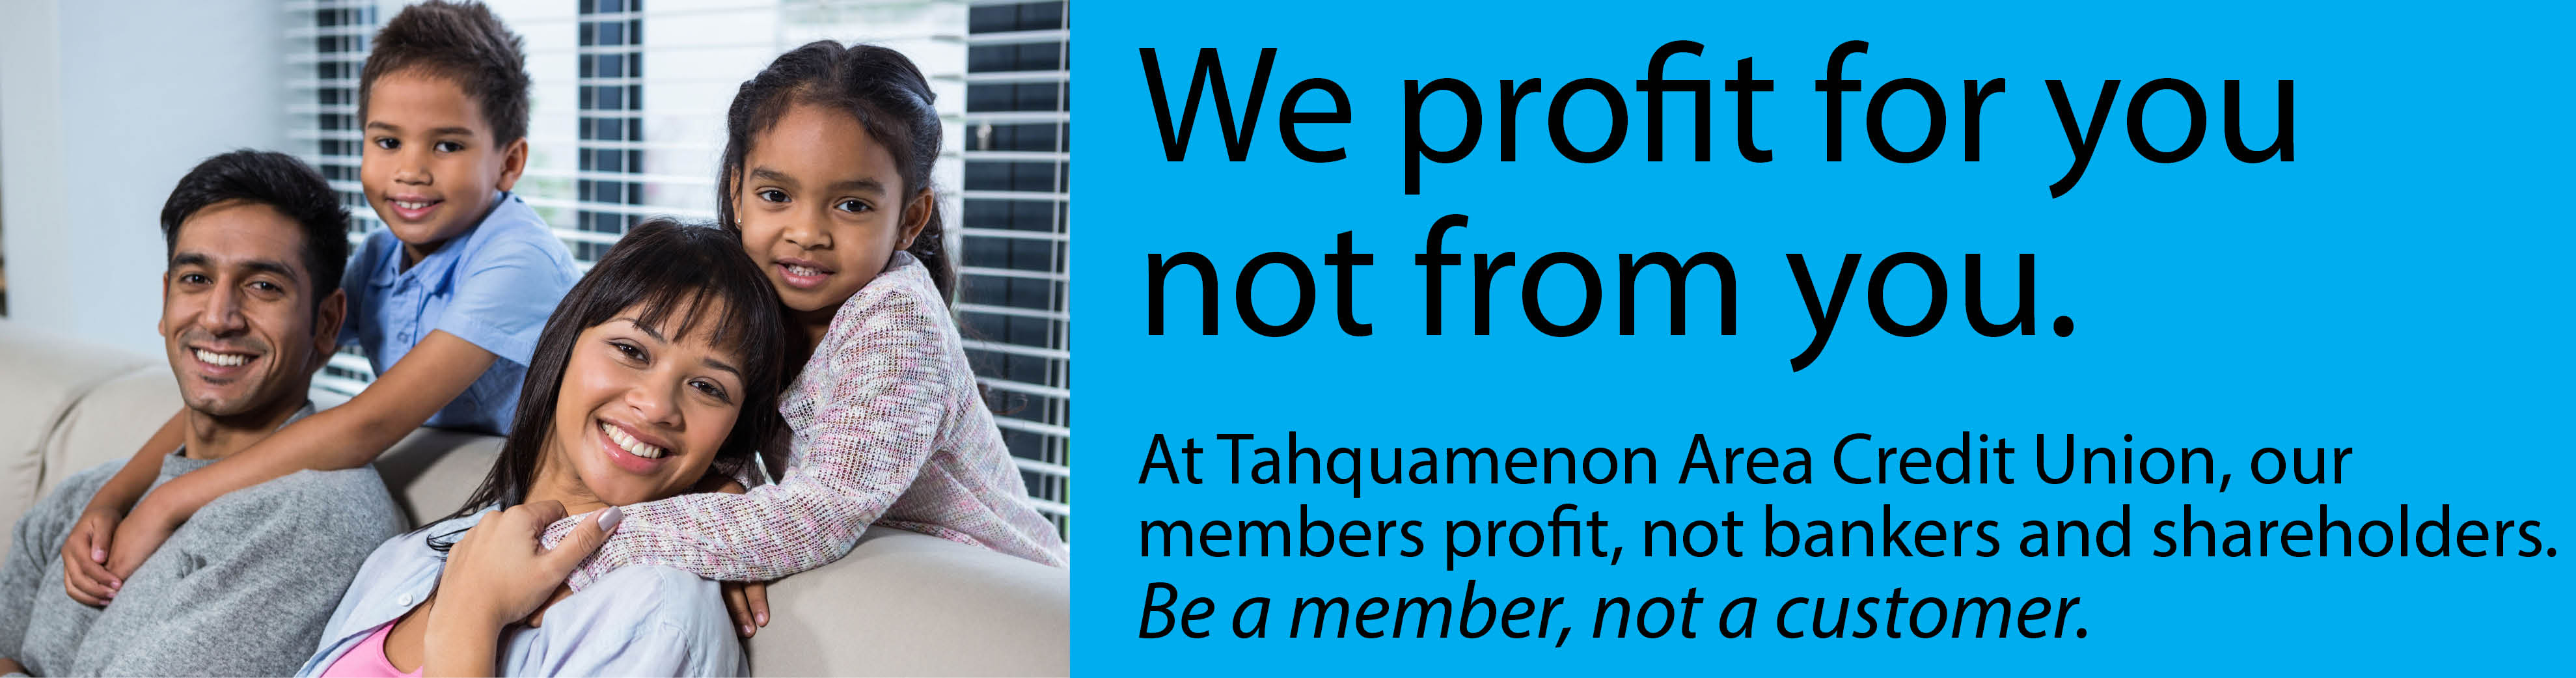 At Tahquamenon Area Credit Union, we profit for you not from you